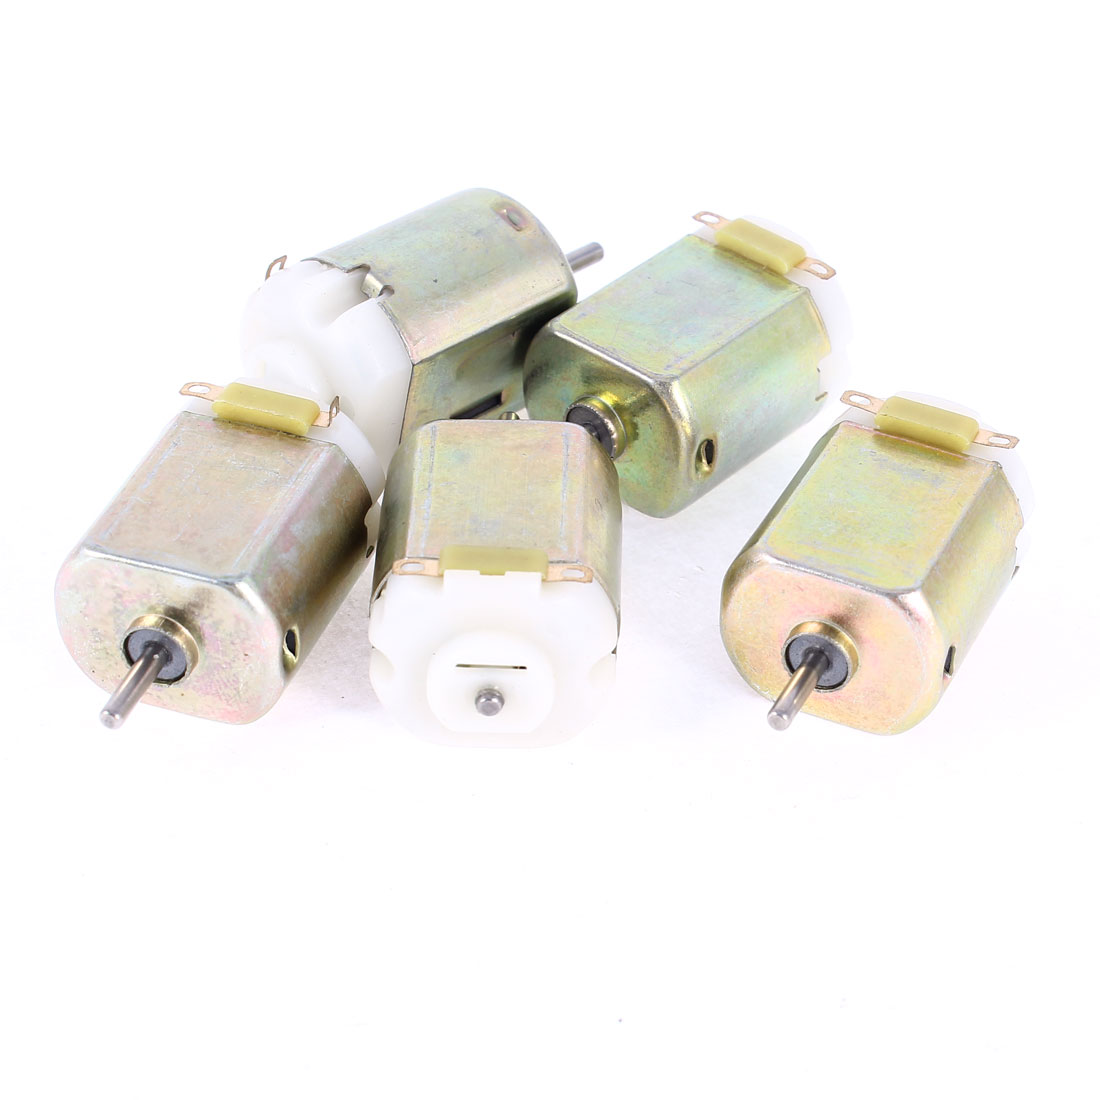 5 Pcs 3V 13000RPM High Speed DC Vibration Micro Motor for Toy Robot